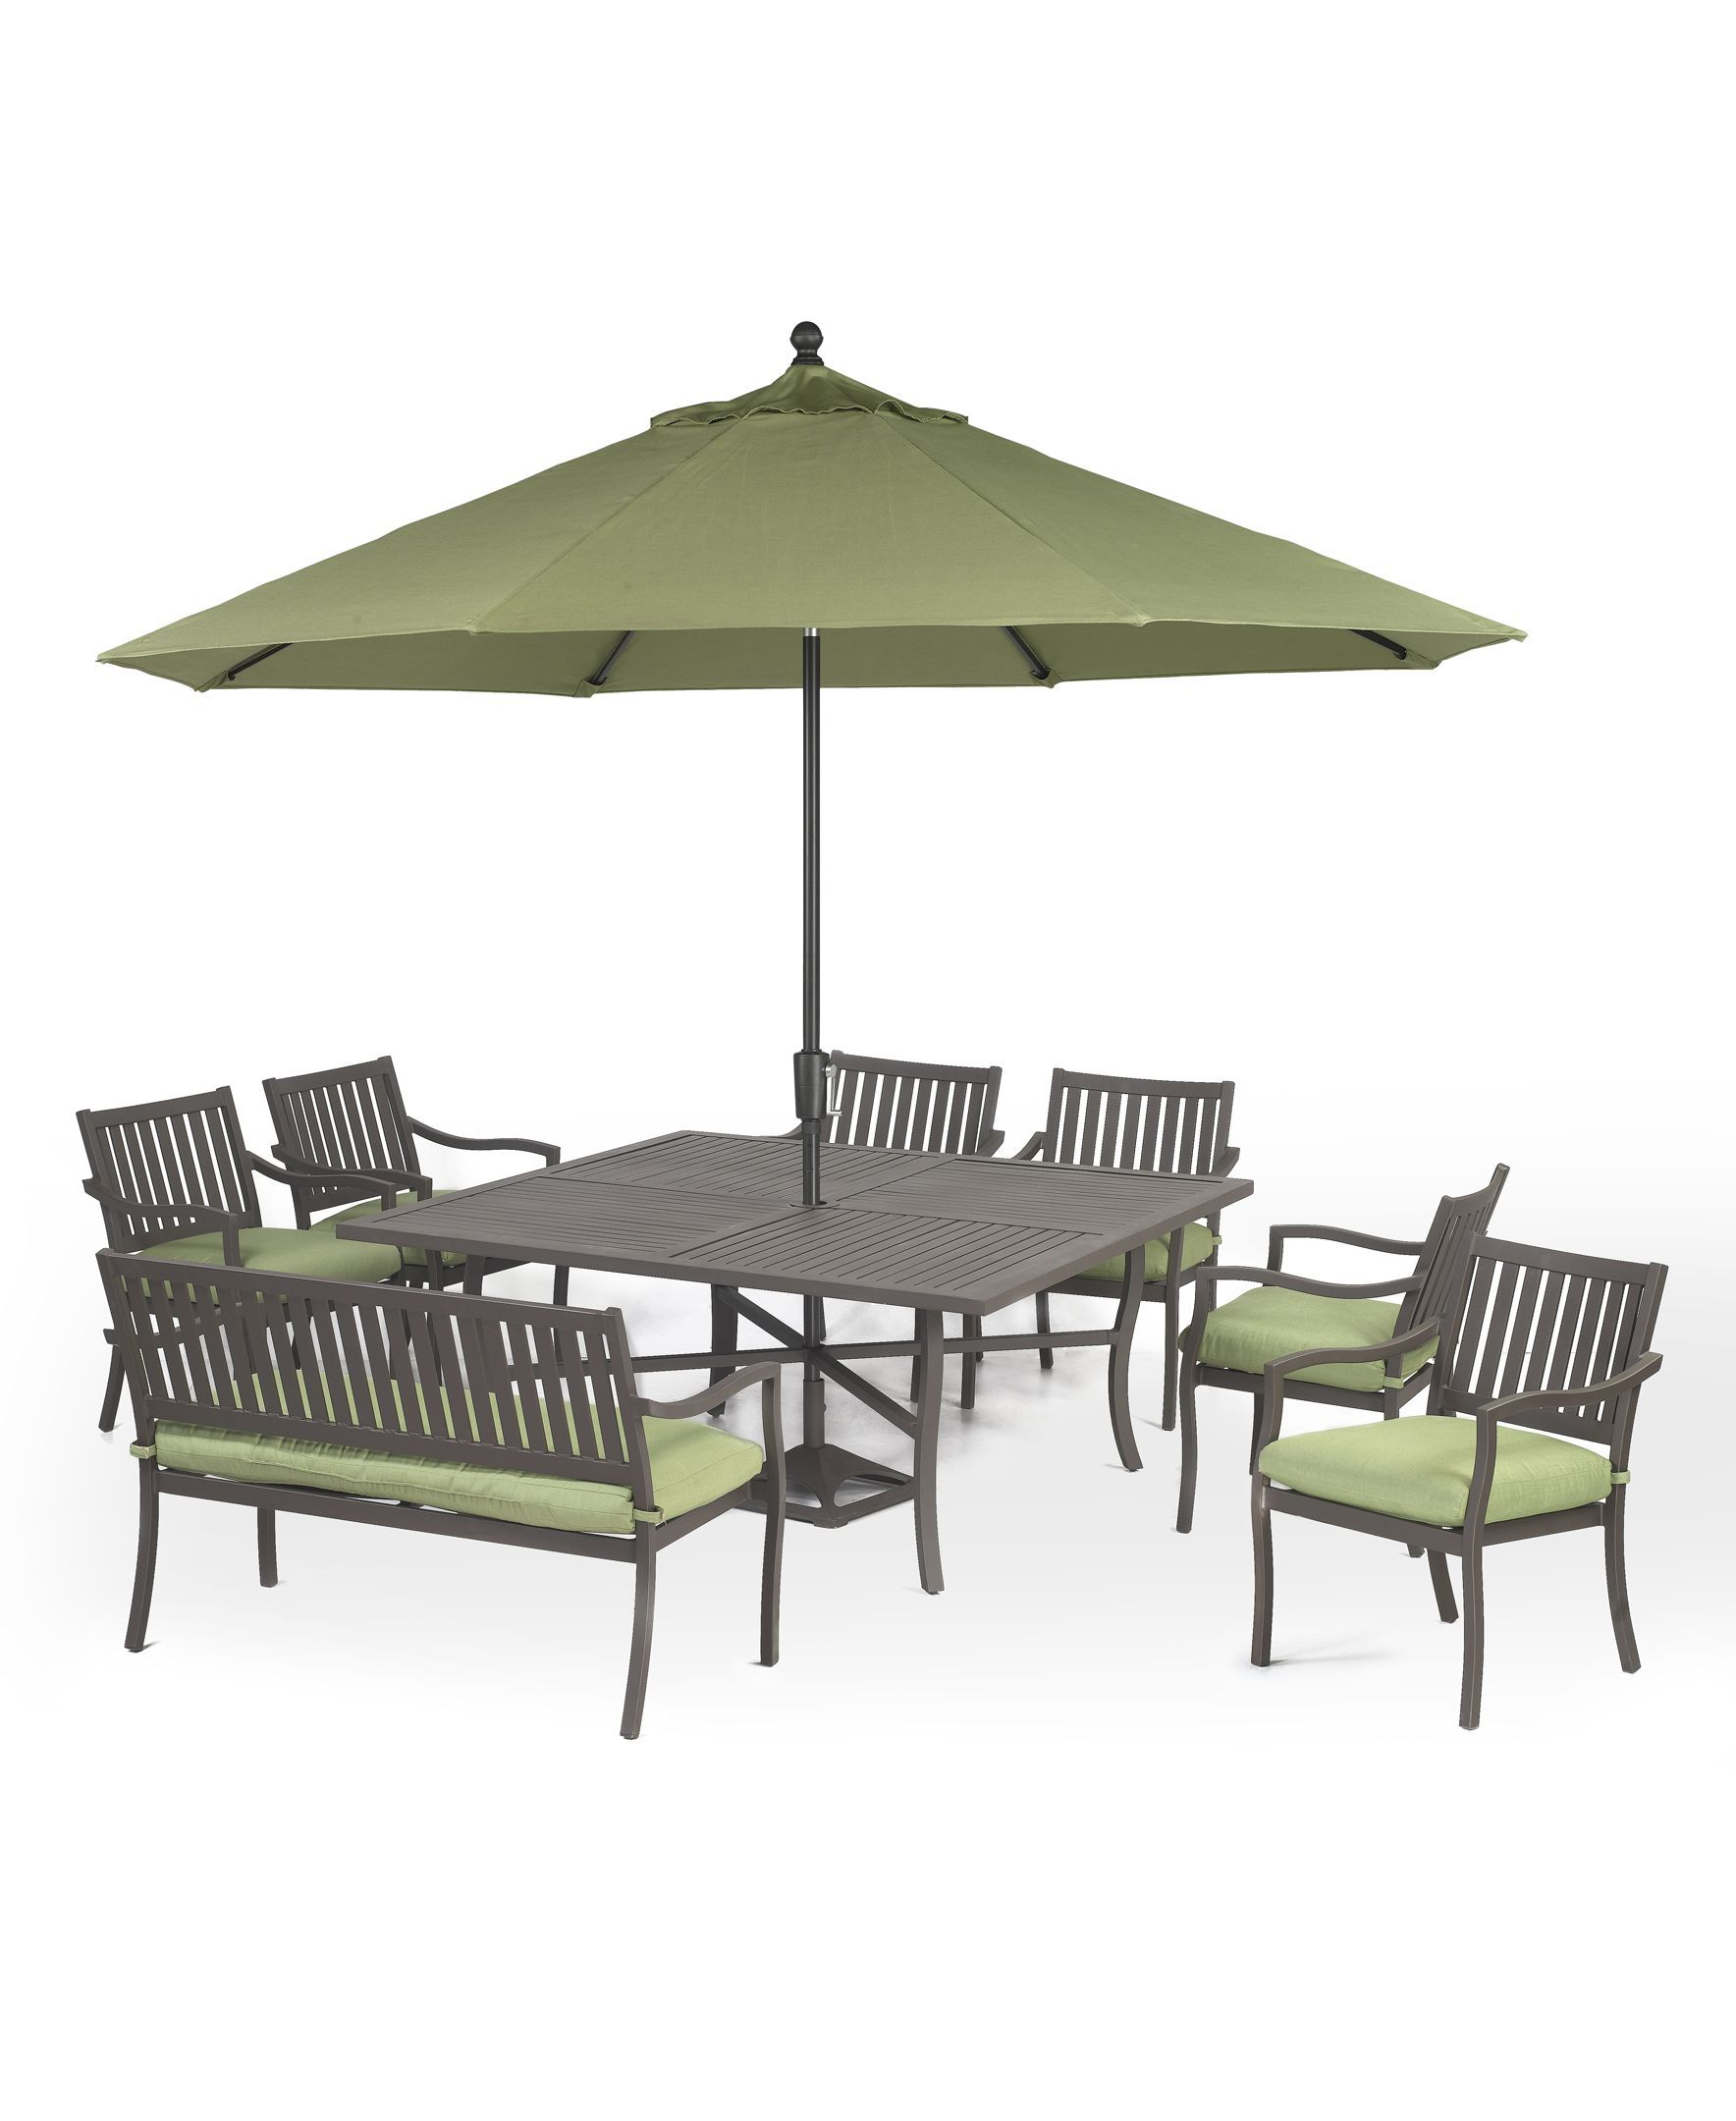 madison outdoor 8 piece set 64 square dining table 6 dining chairs and 1 bench patio outdoor furniture macys - Garden Furniture 6 Chairs